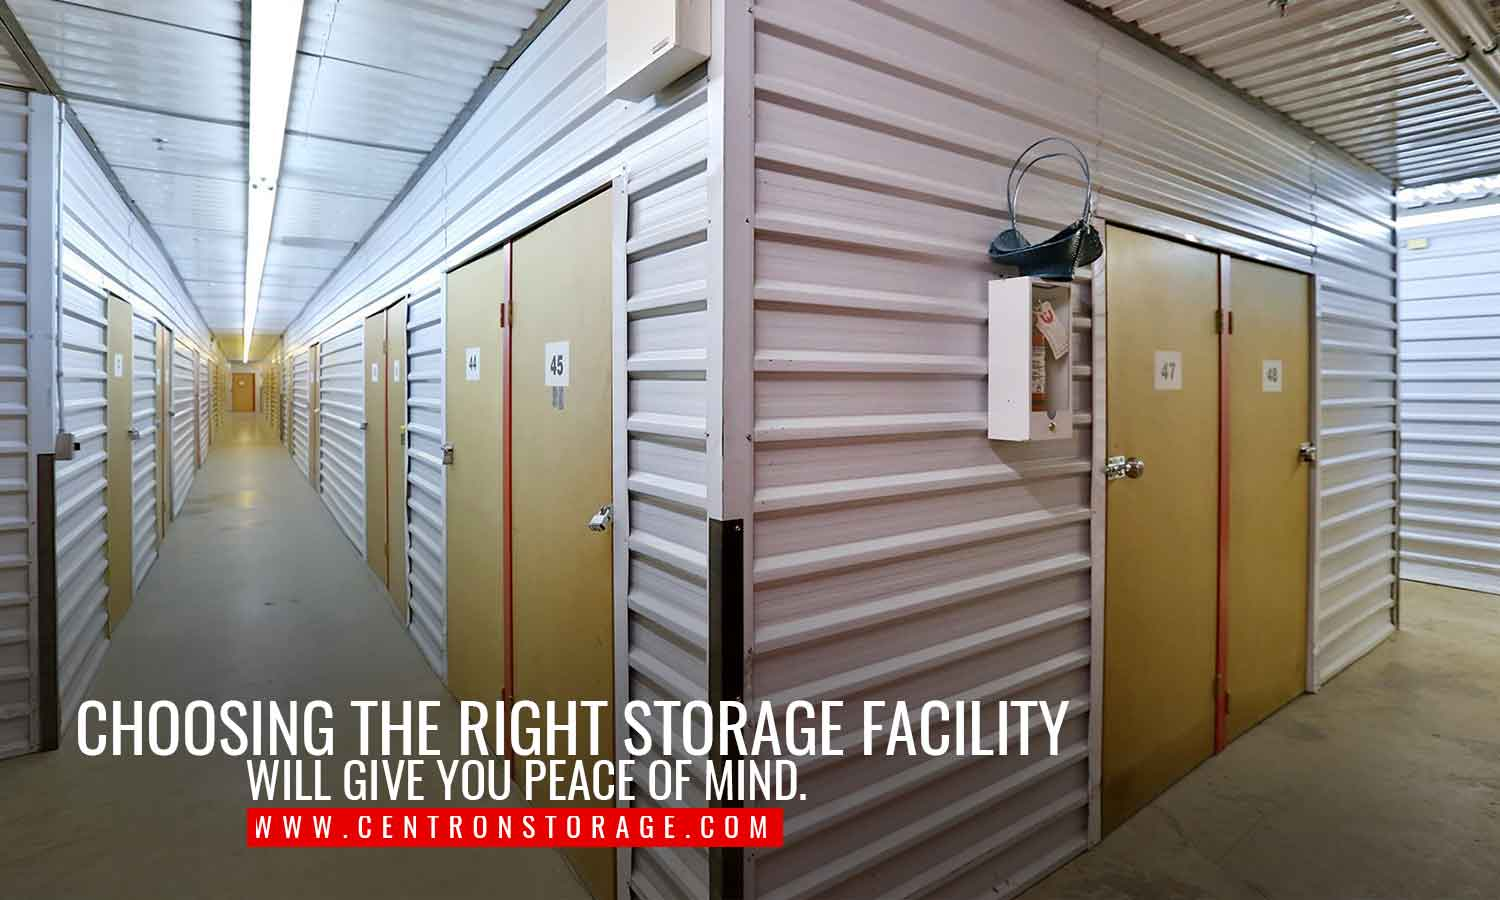 Choosing the right storage facility will give you peace of mind.